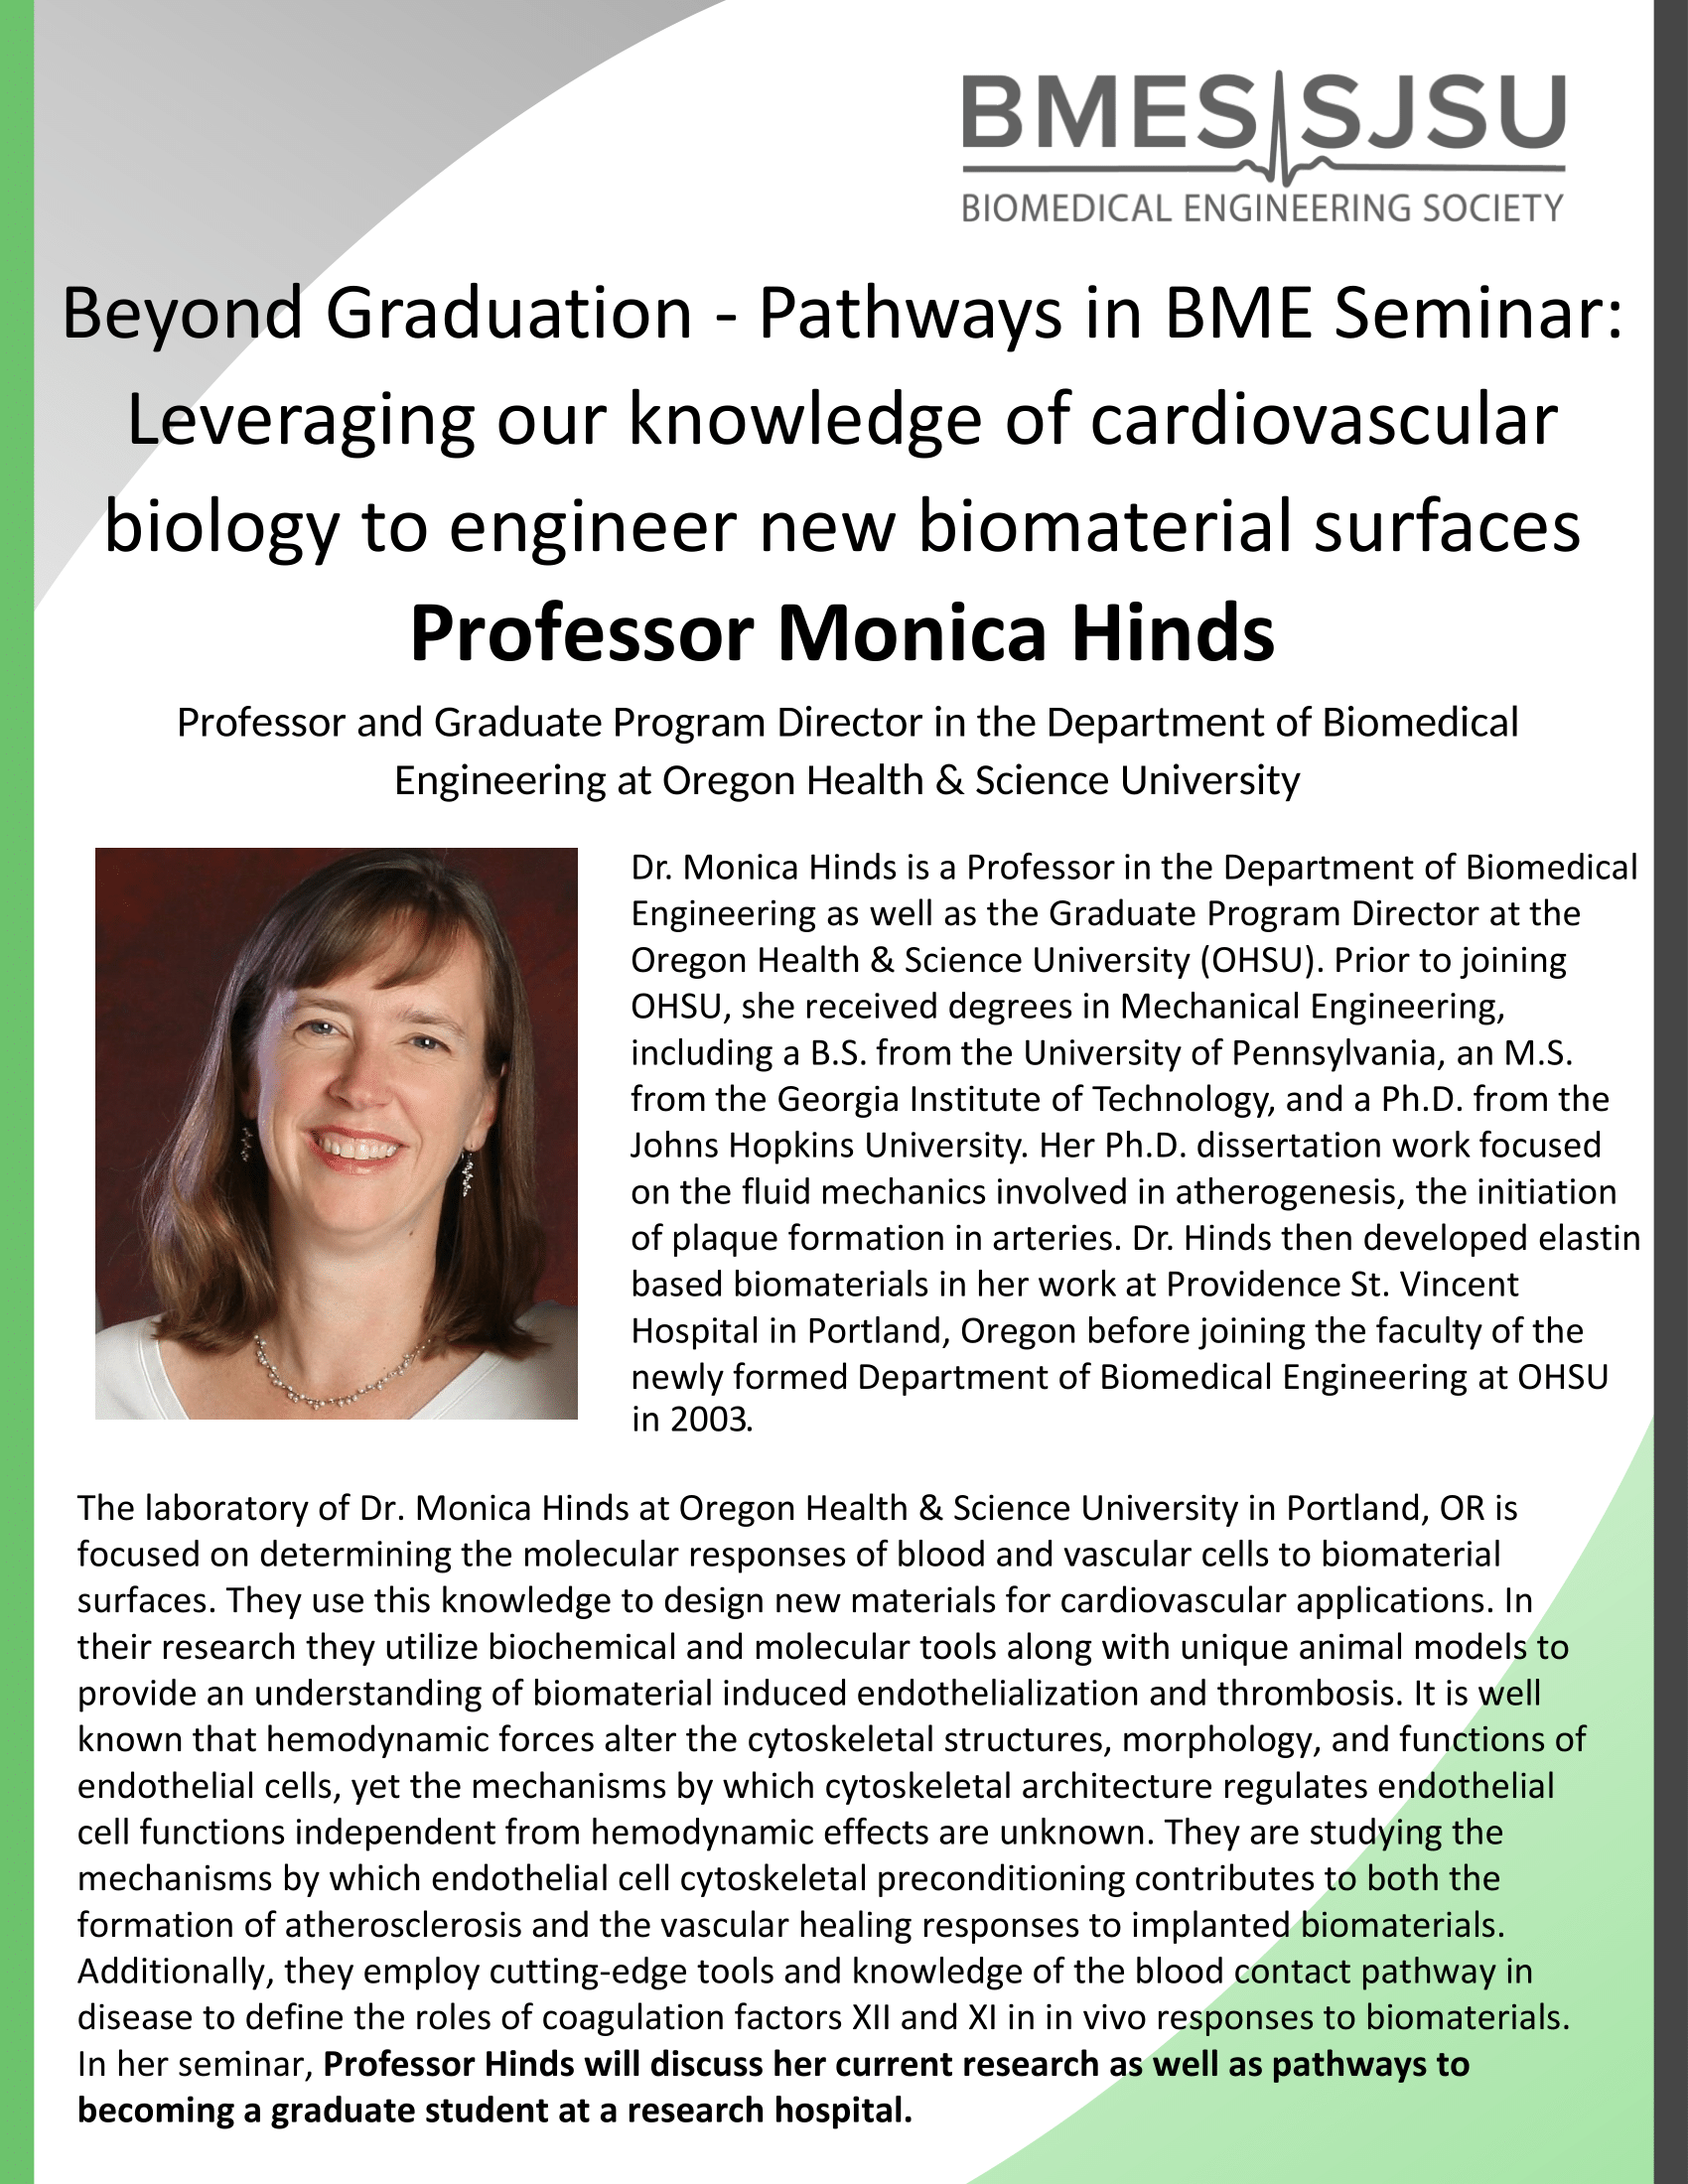 Pathways in BME Seminar - Monica Hinds - 10-31-19 (1) (1)-1.png